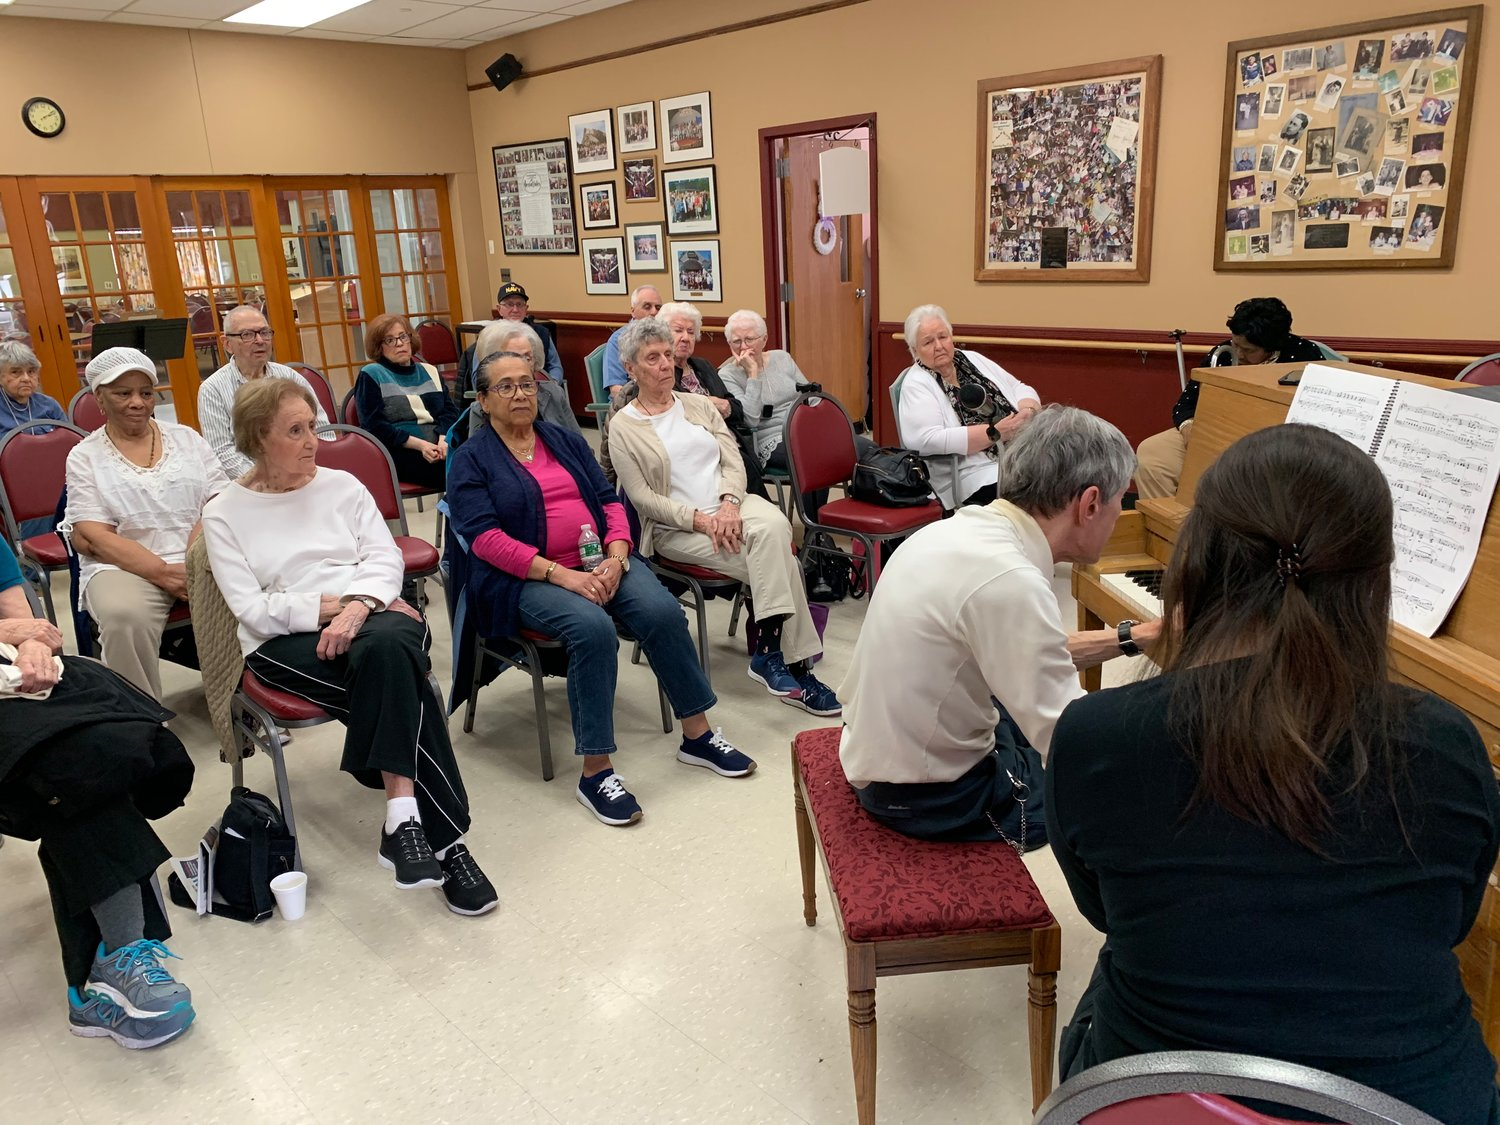 Although the audience for Holzman's performance at the senior center wasn't large, several people had strong emotional responses to the music.